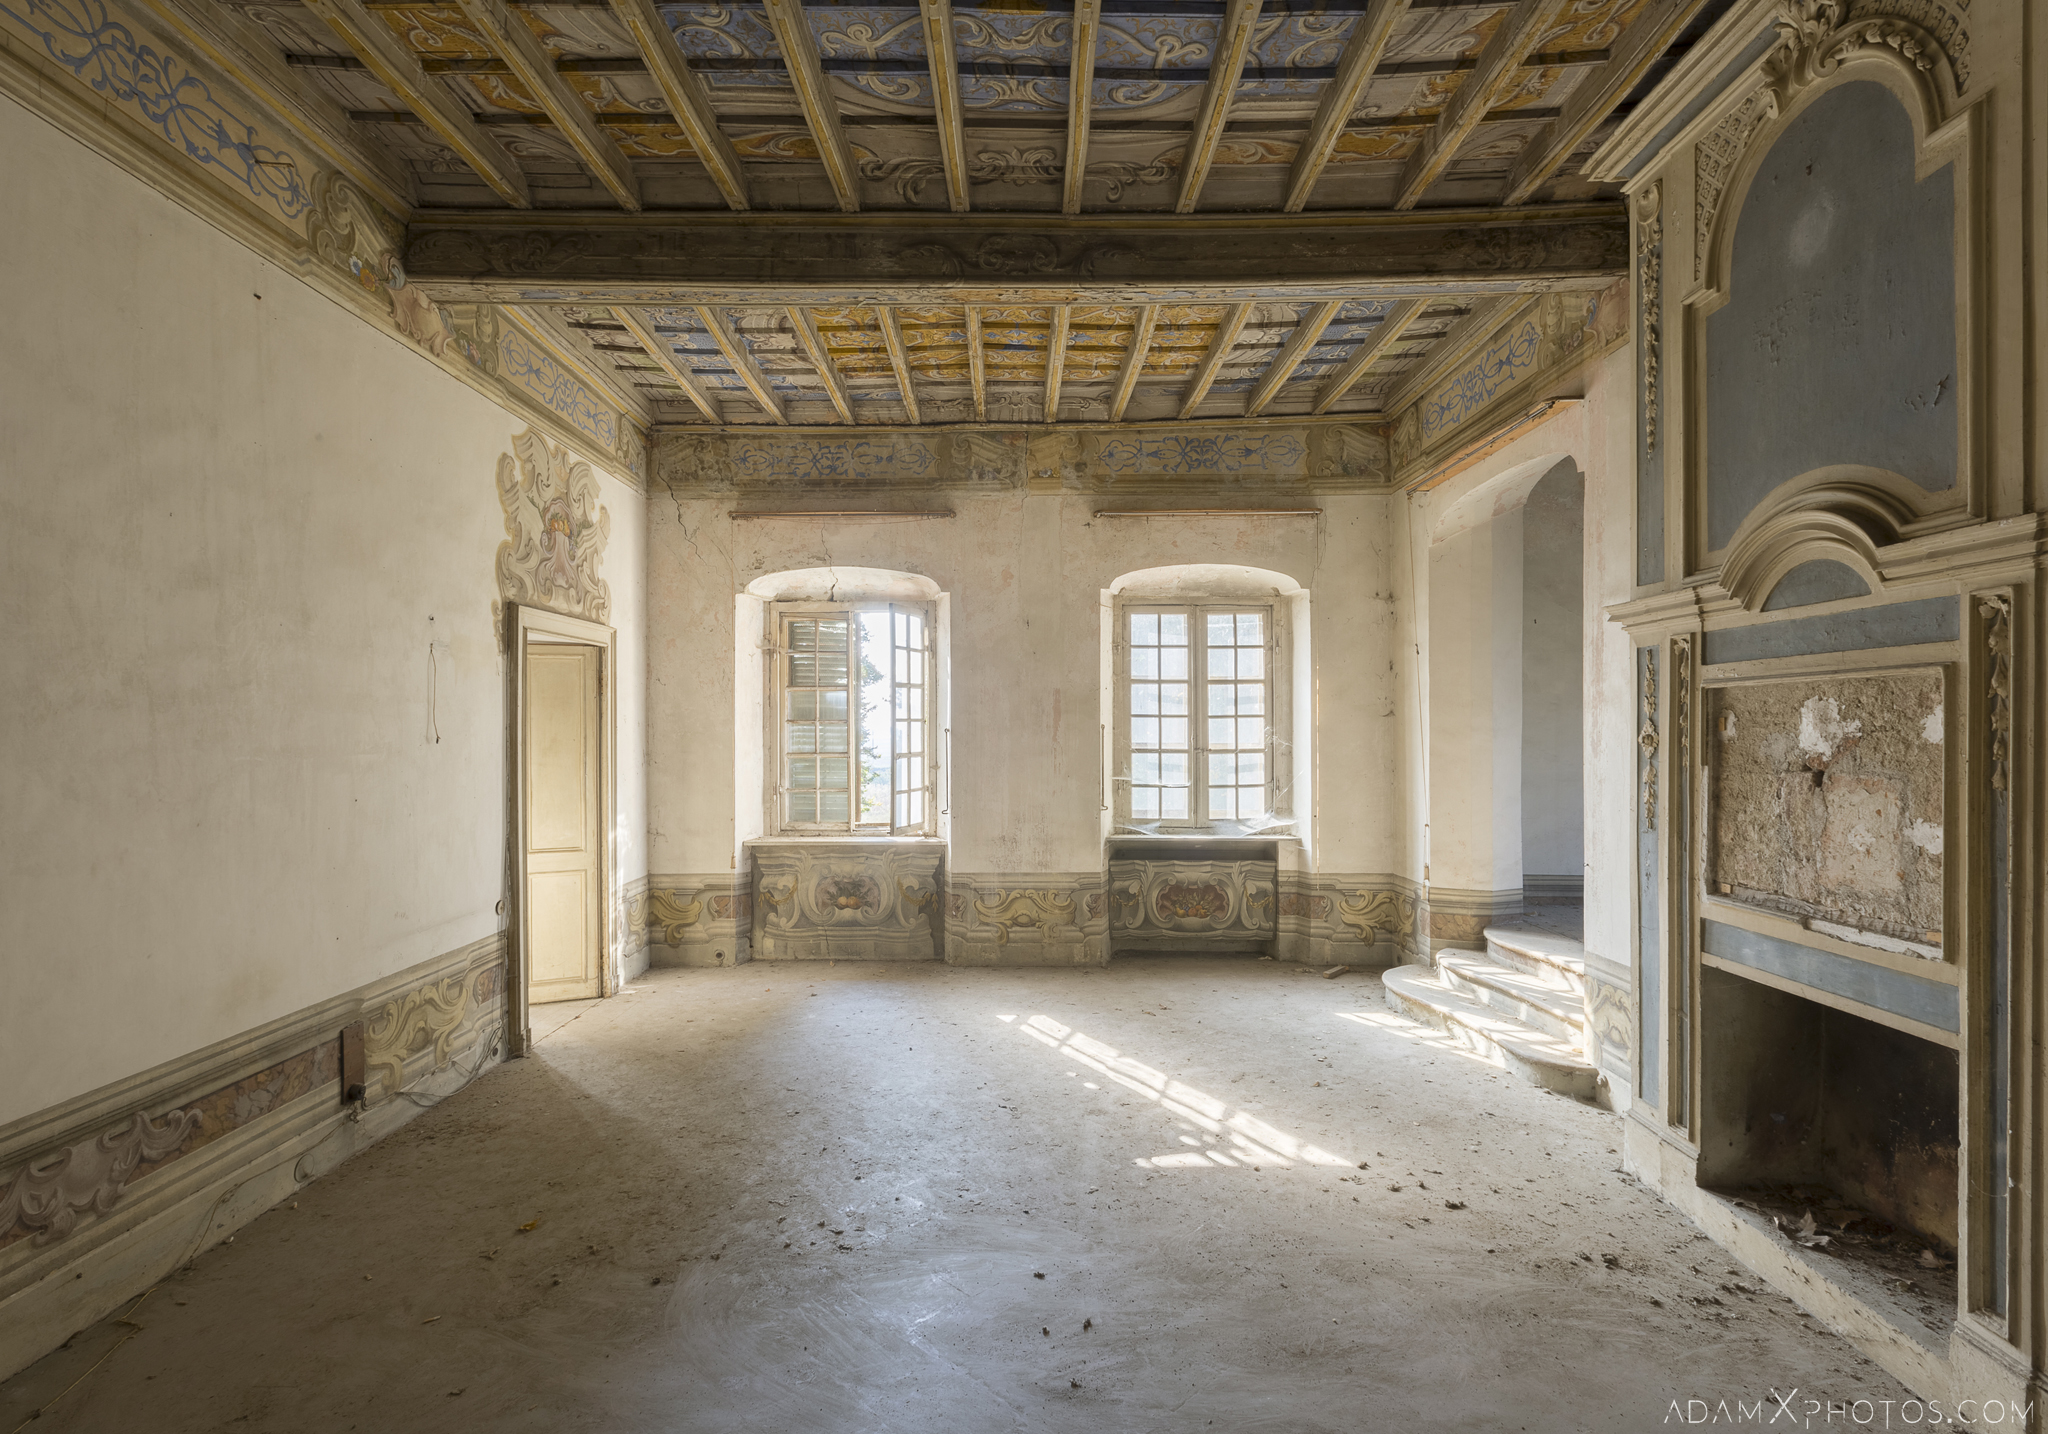 Blue room Palazzo L Villa Rosa Urbex Adam X Urban Exploration Italy Italia Access 2016 Abandoned Grand Ornate Neoclassical decay lost forgotten infiltration derelict location creepy haunting eerie